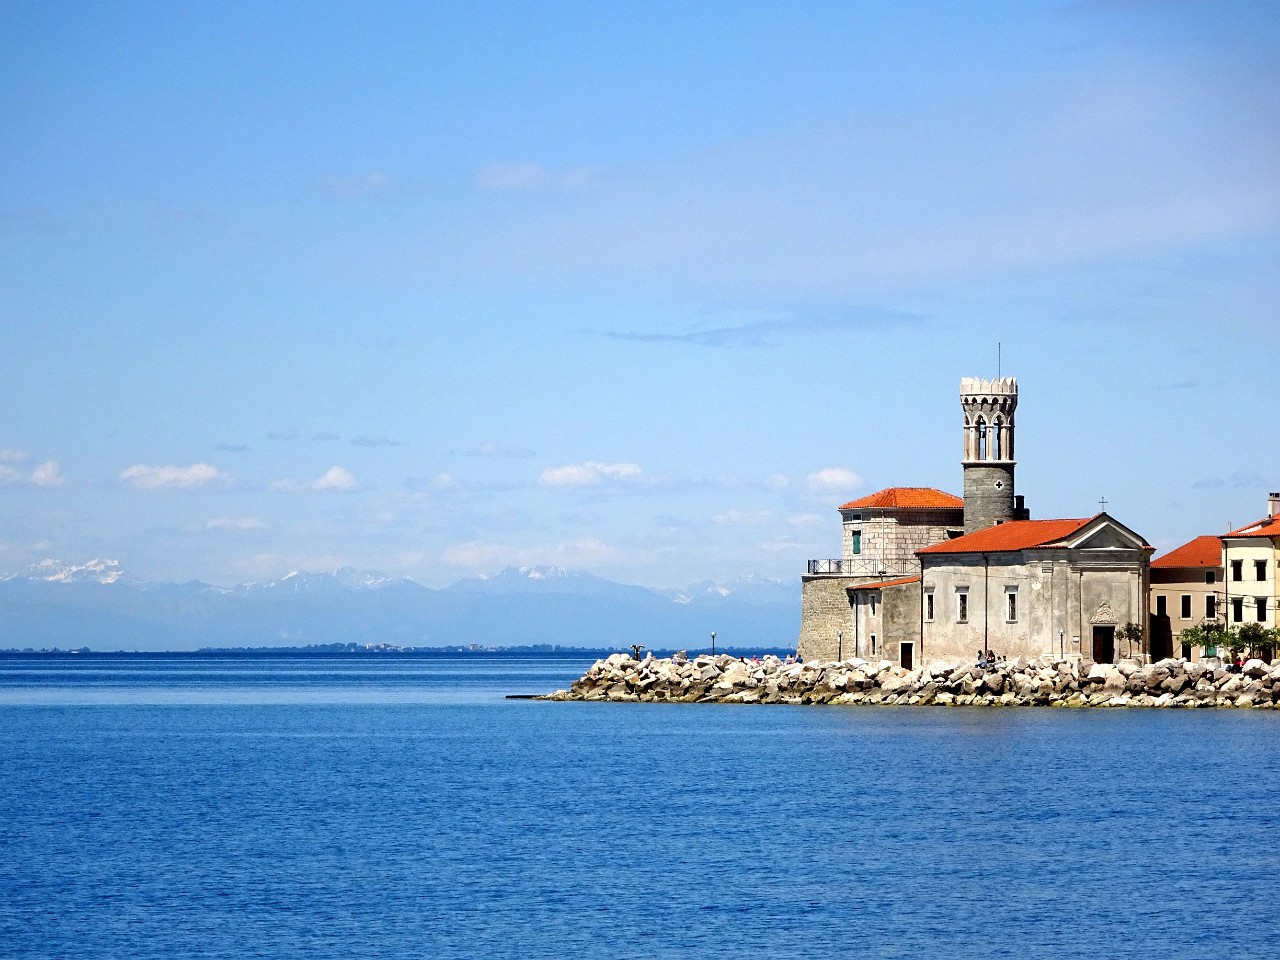 Piran lighthouse and church